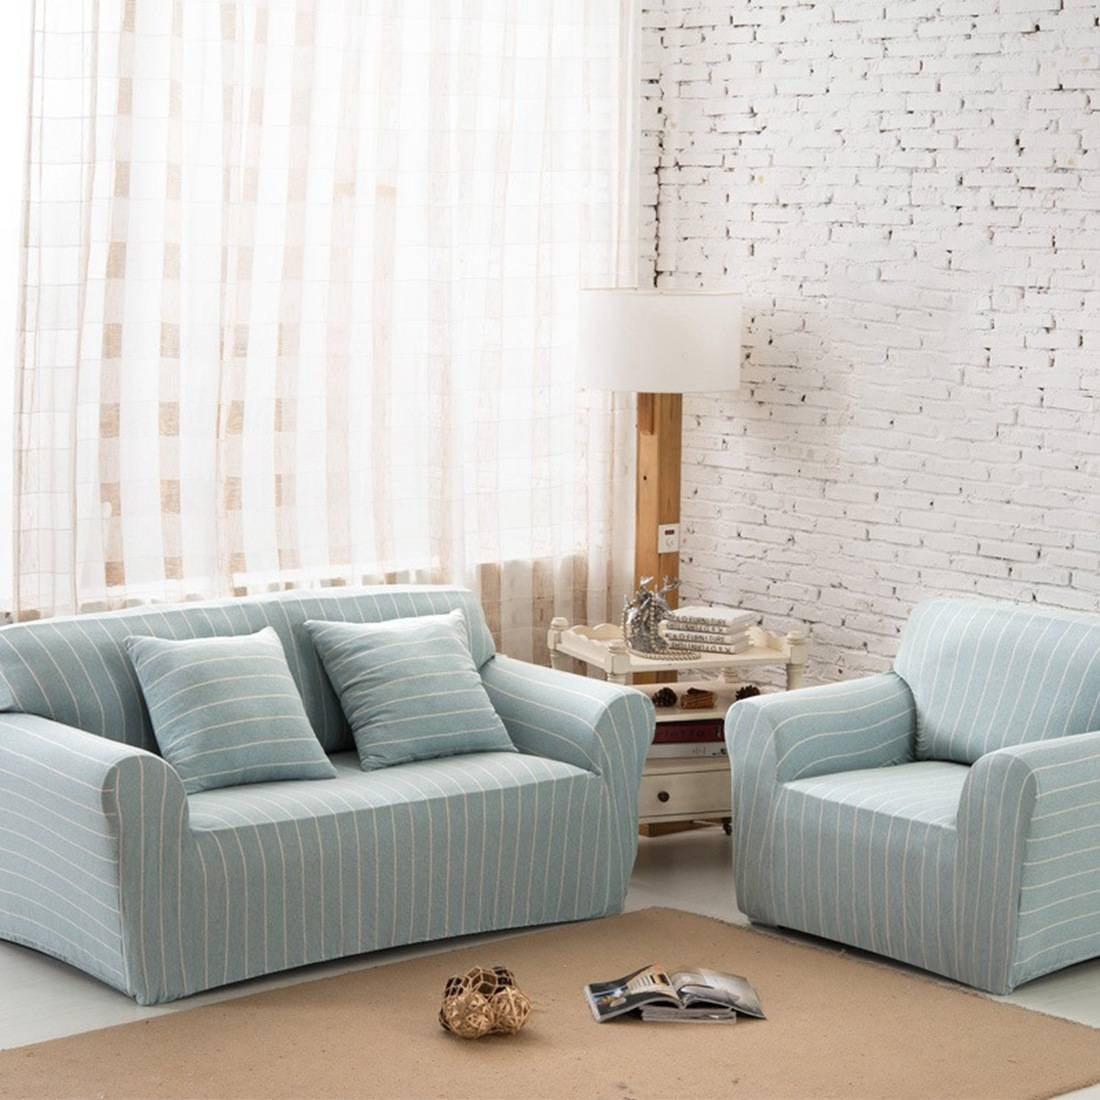 Popular Quality Couches-Buy Cheap Quality Couches Lots From China throughout Quality Sectional Sofa (Image 15 of 30)